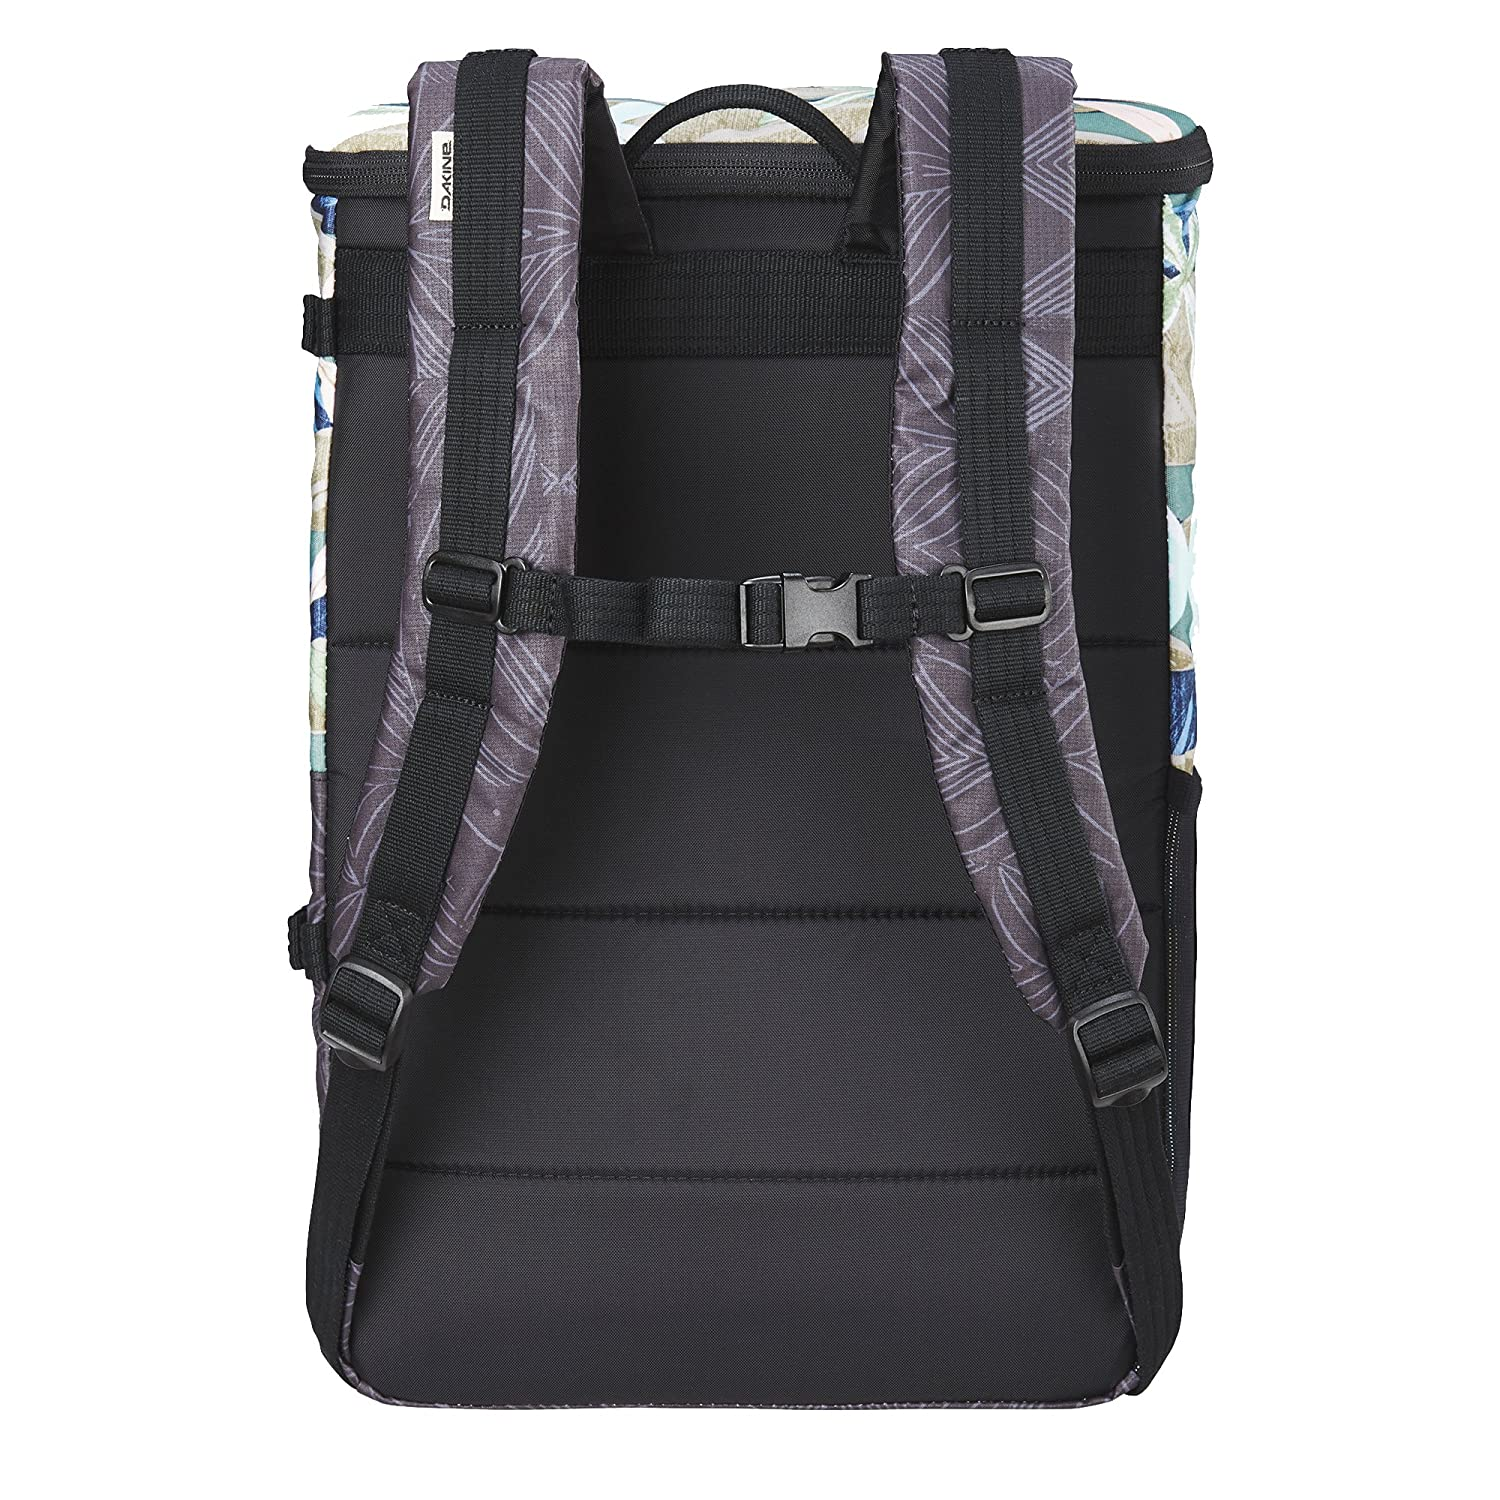 Amazon.com: Dakine Plate Lunch Section Wet/Dry 28L Backpack, Island Bloom, One Size: Sports & Outdoors